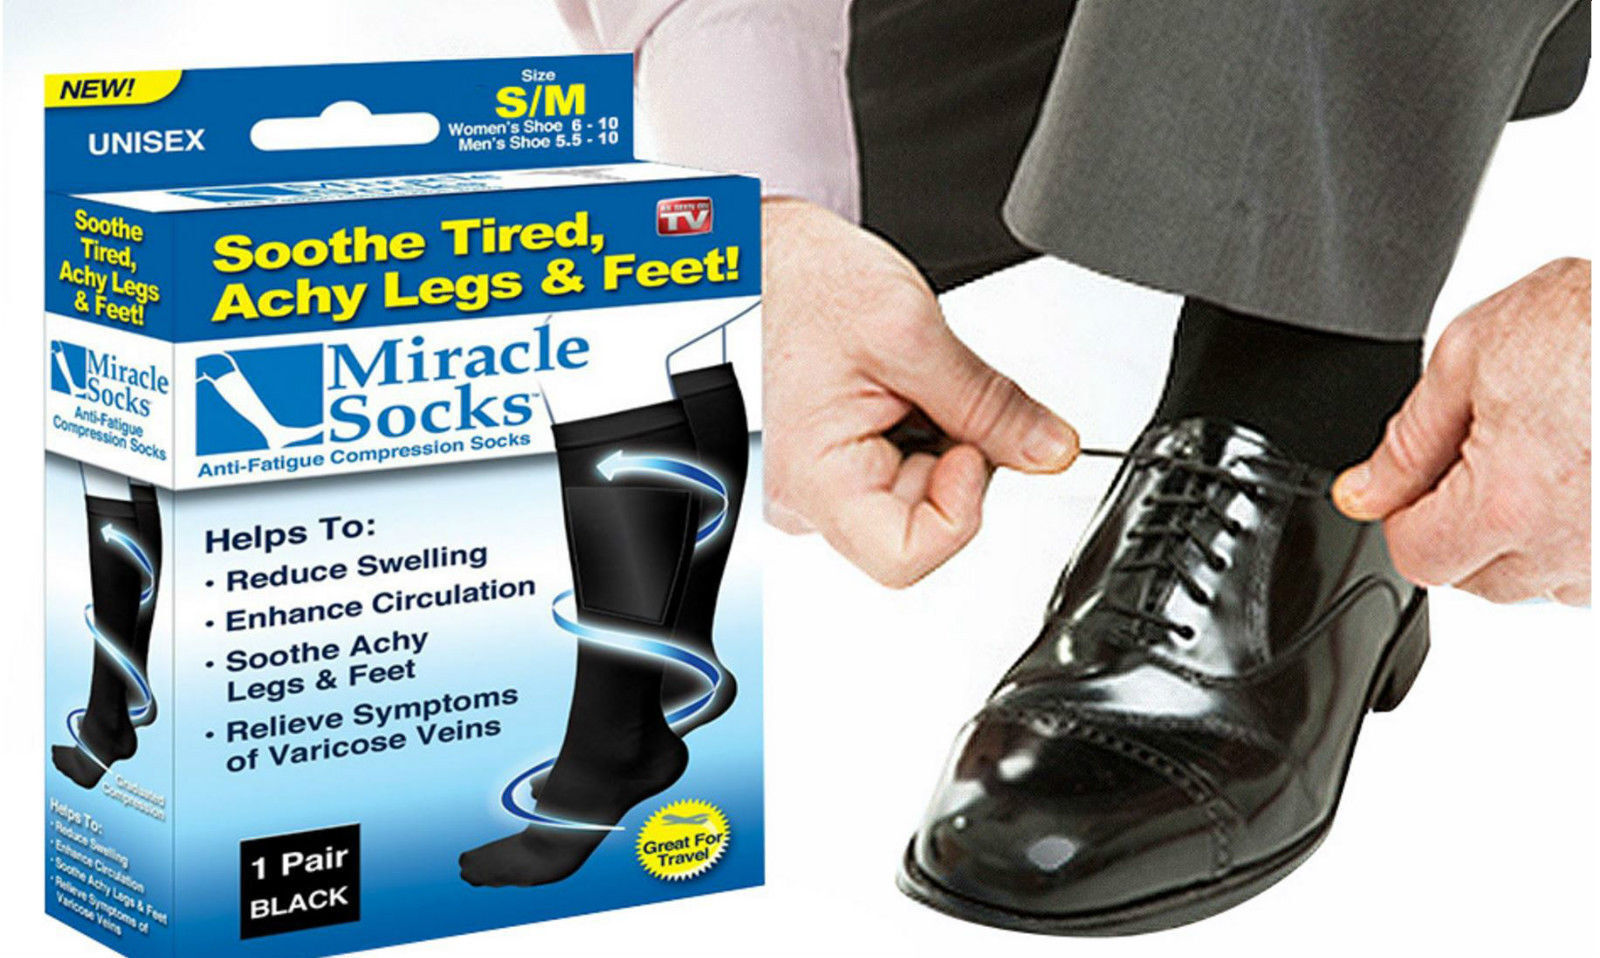 Chaussettes de contention, compression anti-fatigue  Miracle Socks Socks Socks 363185